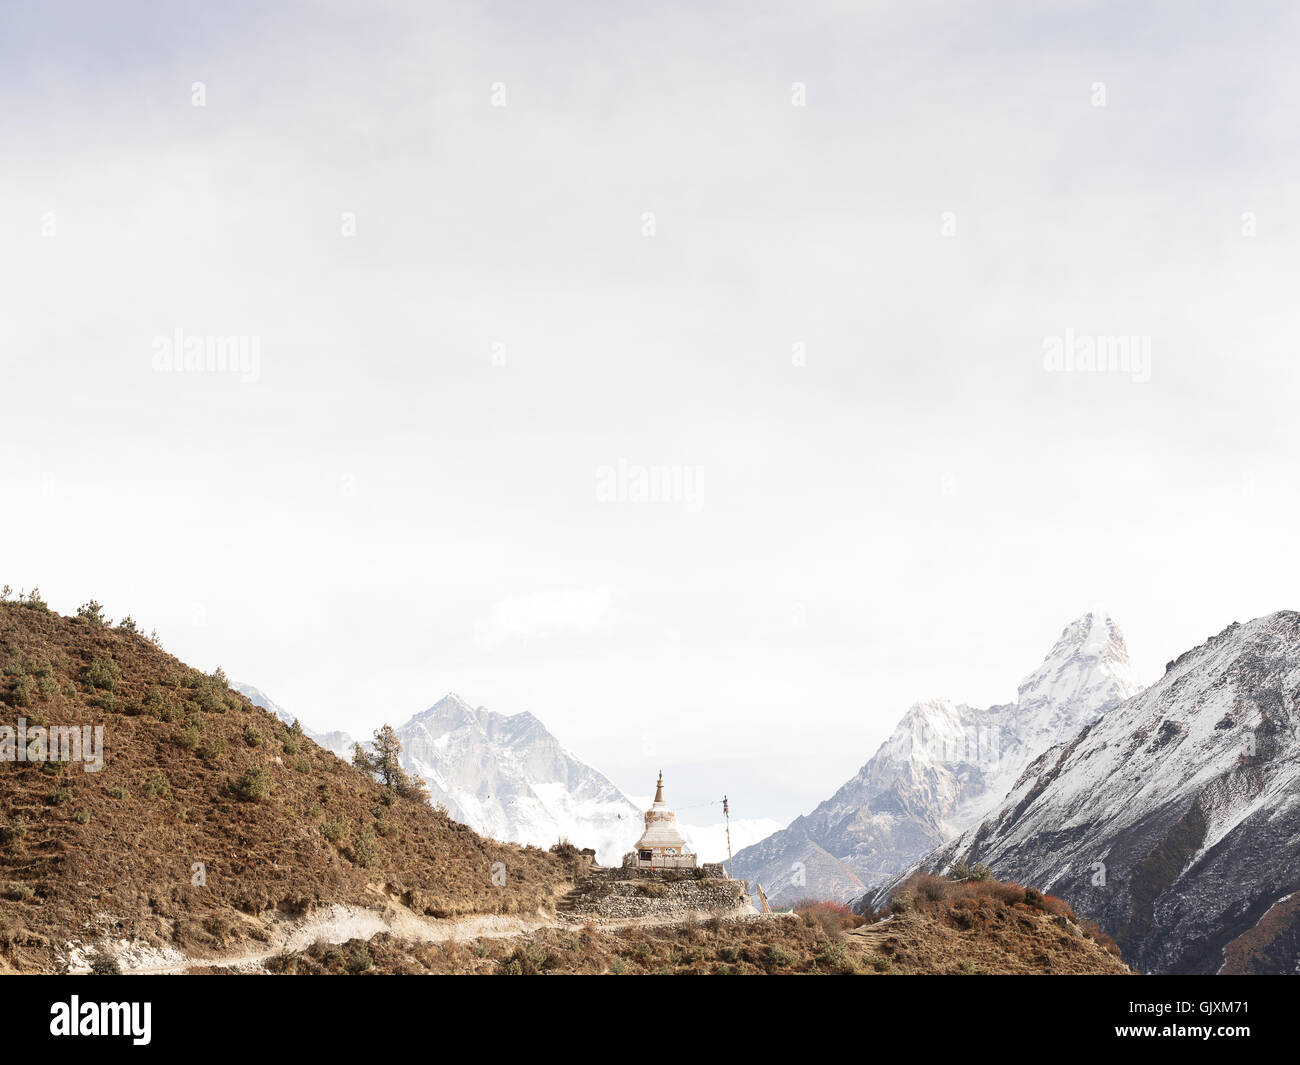 A Buddhist Temple in Everest Base Camp near Namche, Nepal - Stock Image